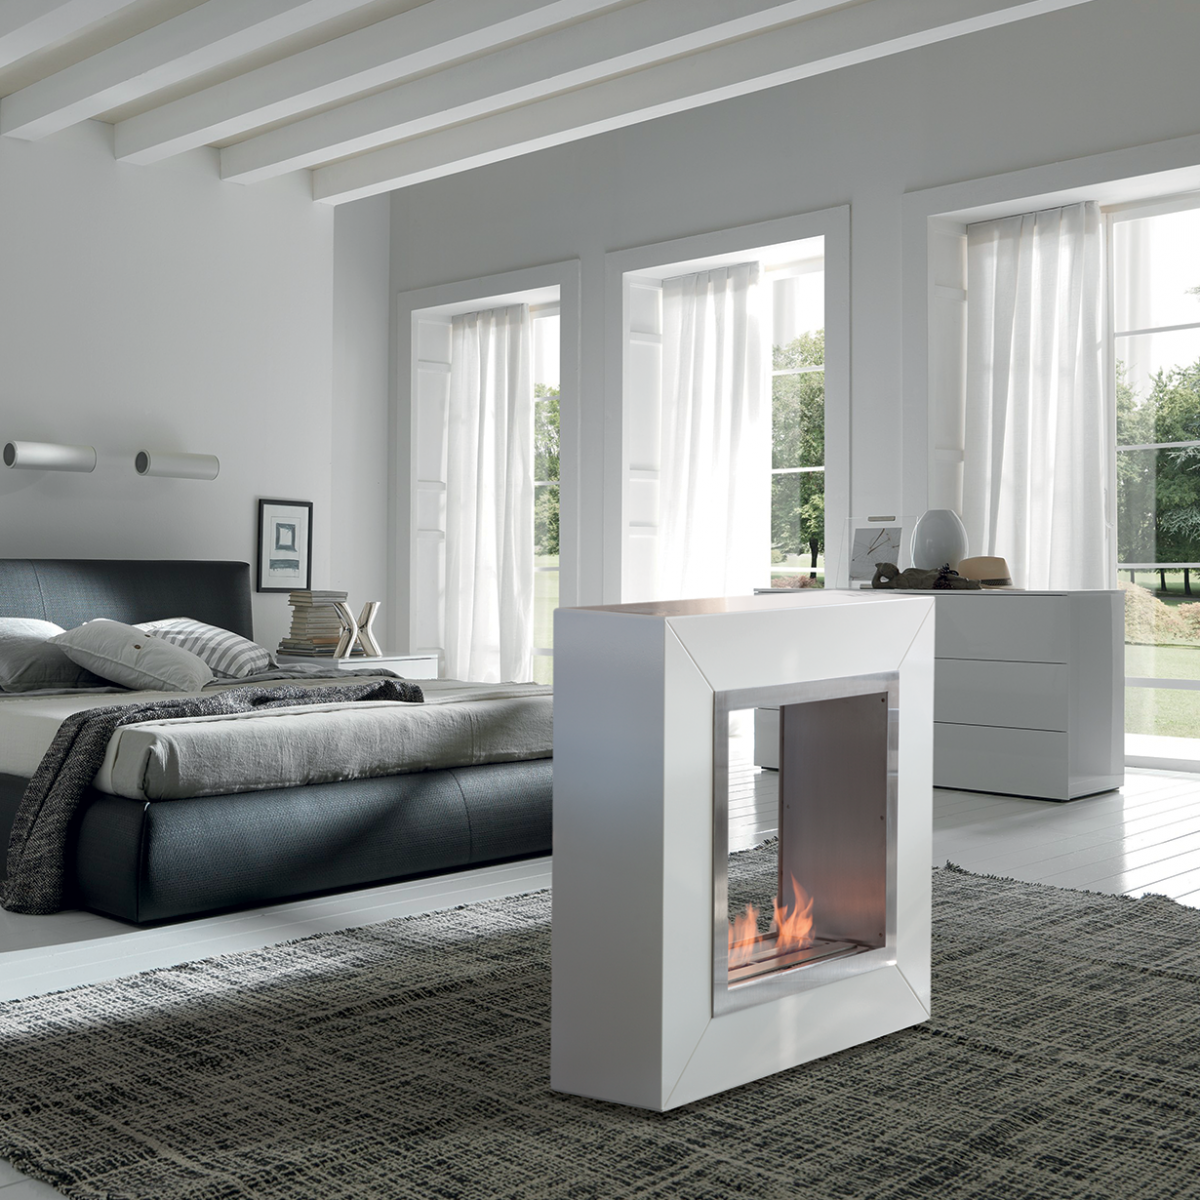 Square Fireplace 2880 Freestanding Fireplace Standing Fireplace Modern Interior